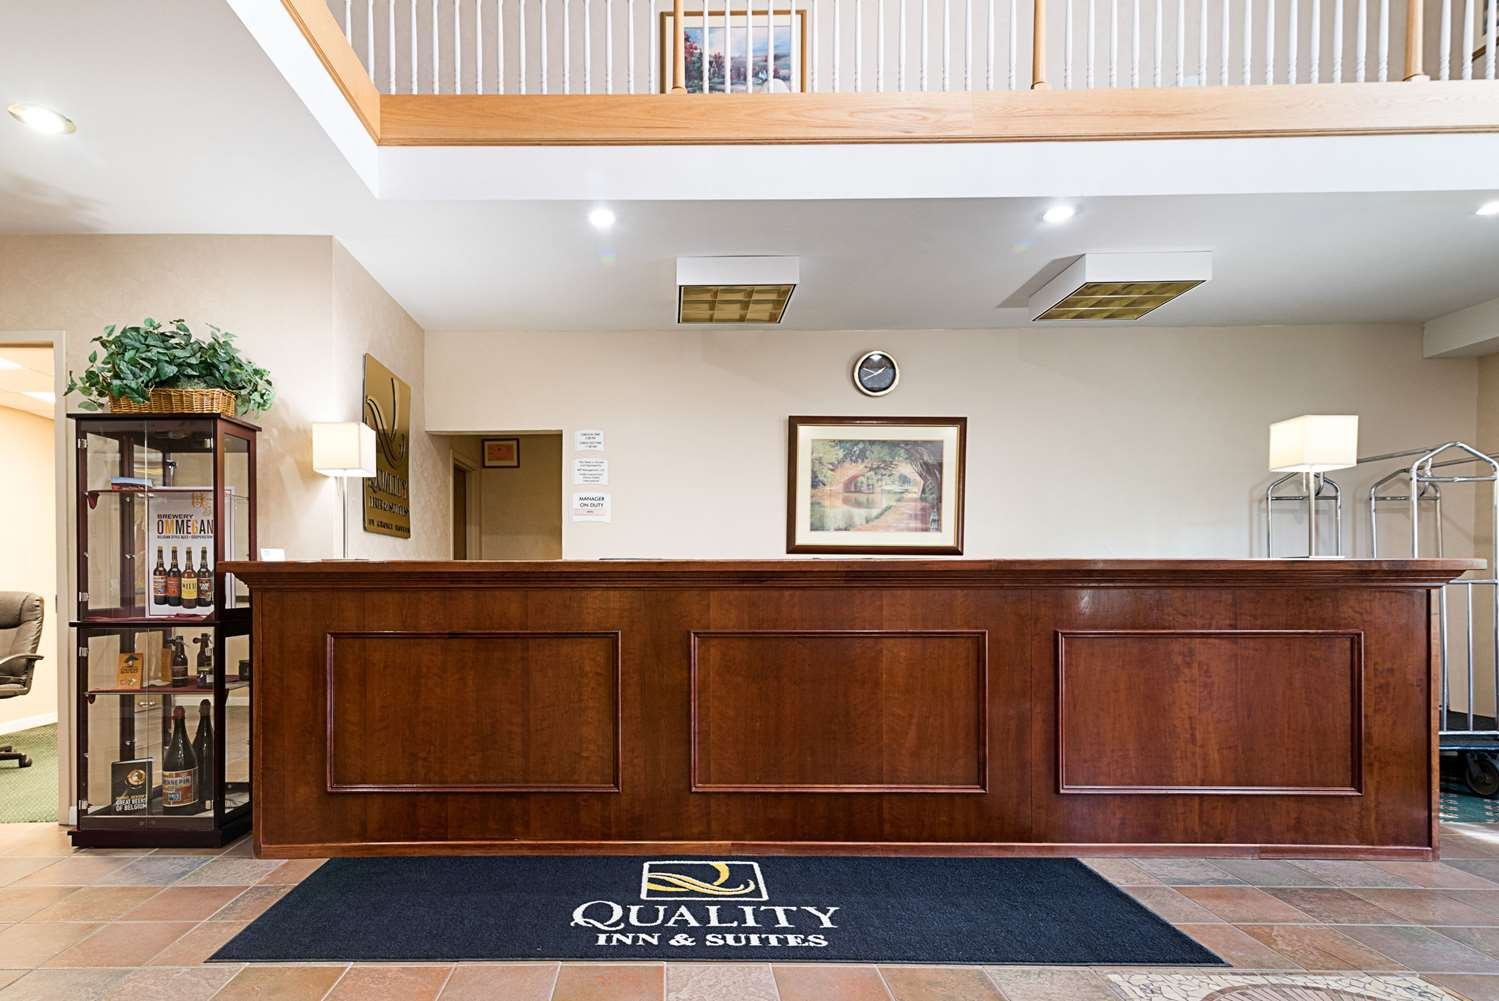 Lobby - Quality Inn & Suites Schoharie